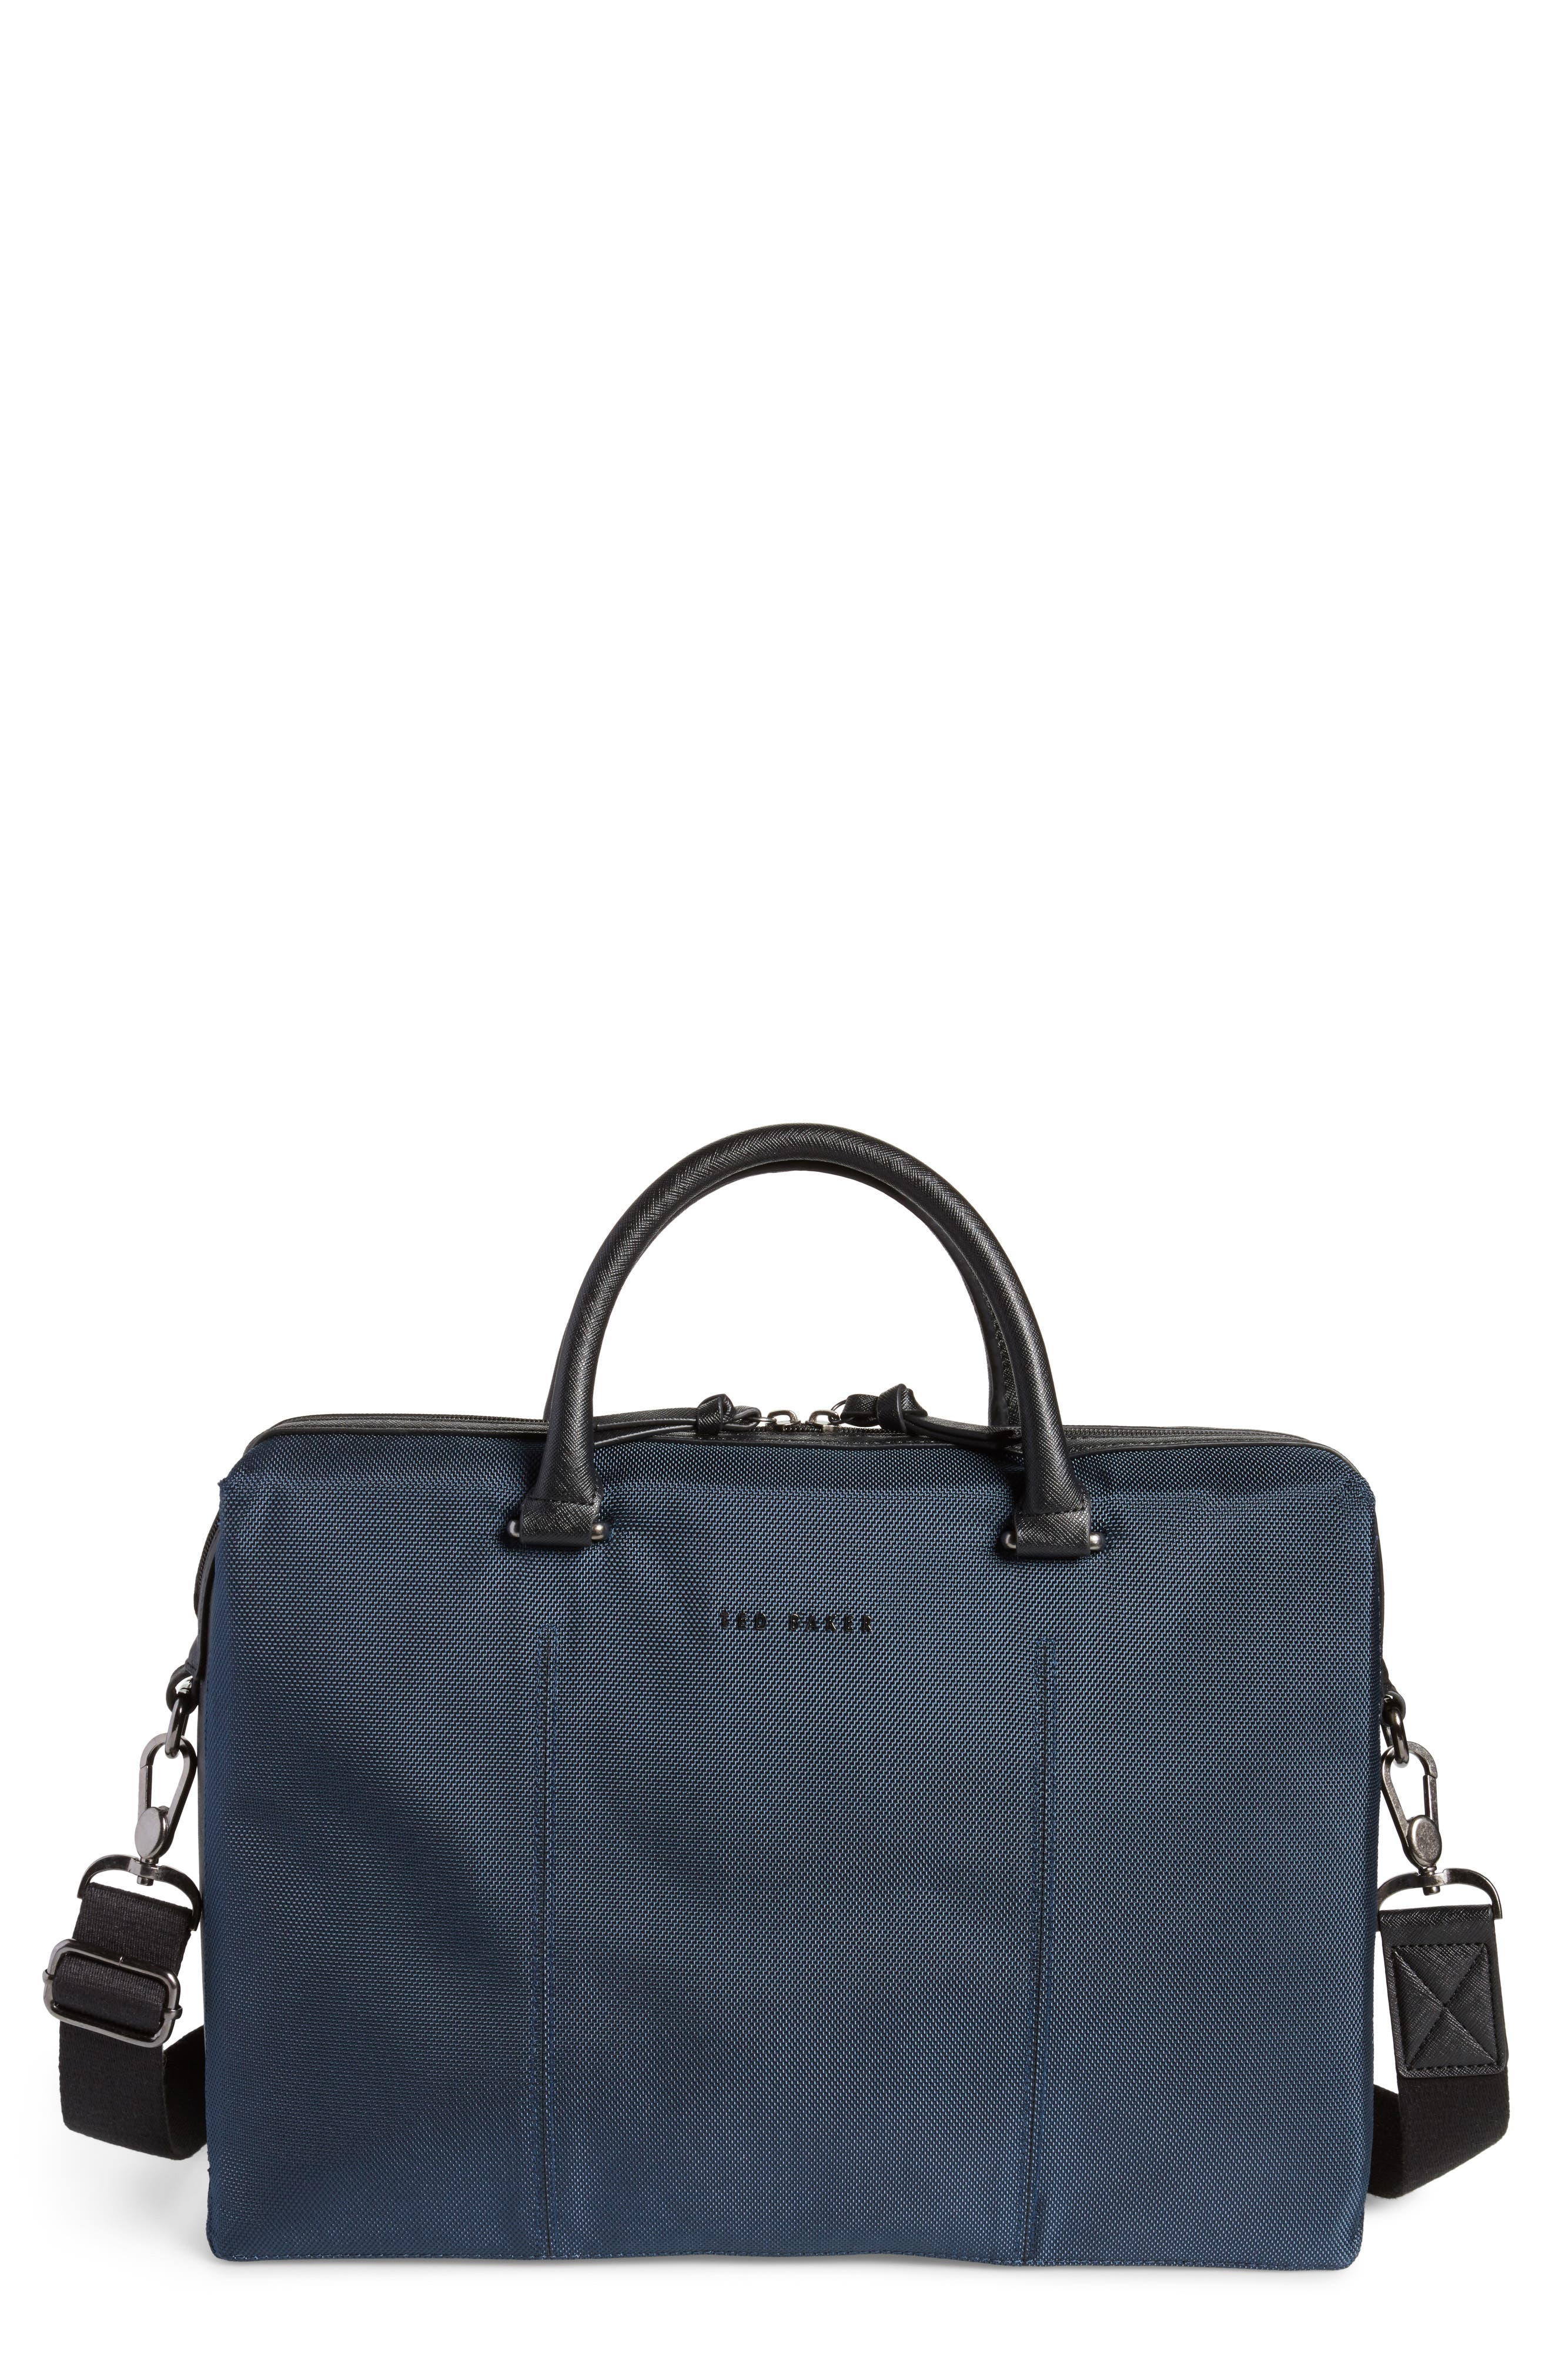 Document Bag,                             Main thumbnail 1, color,                             Navy